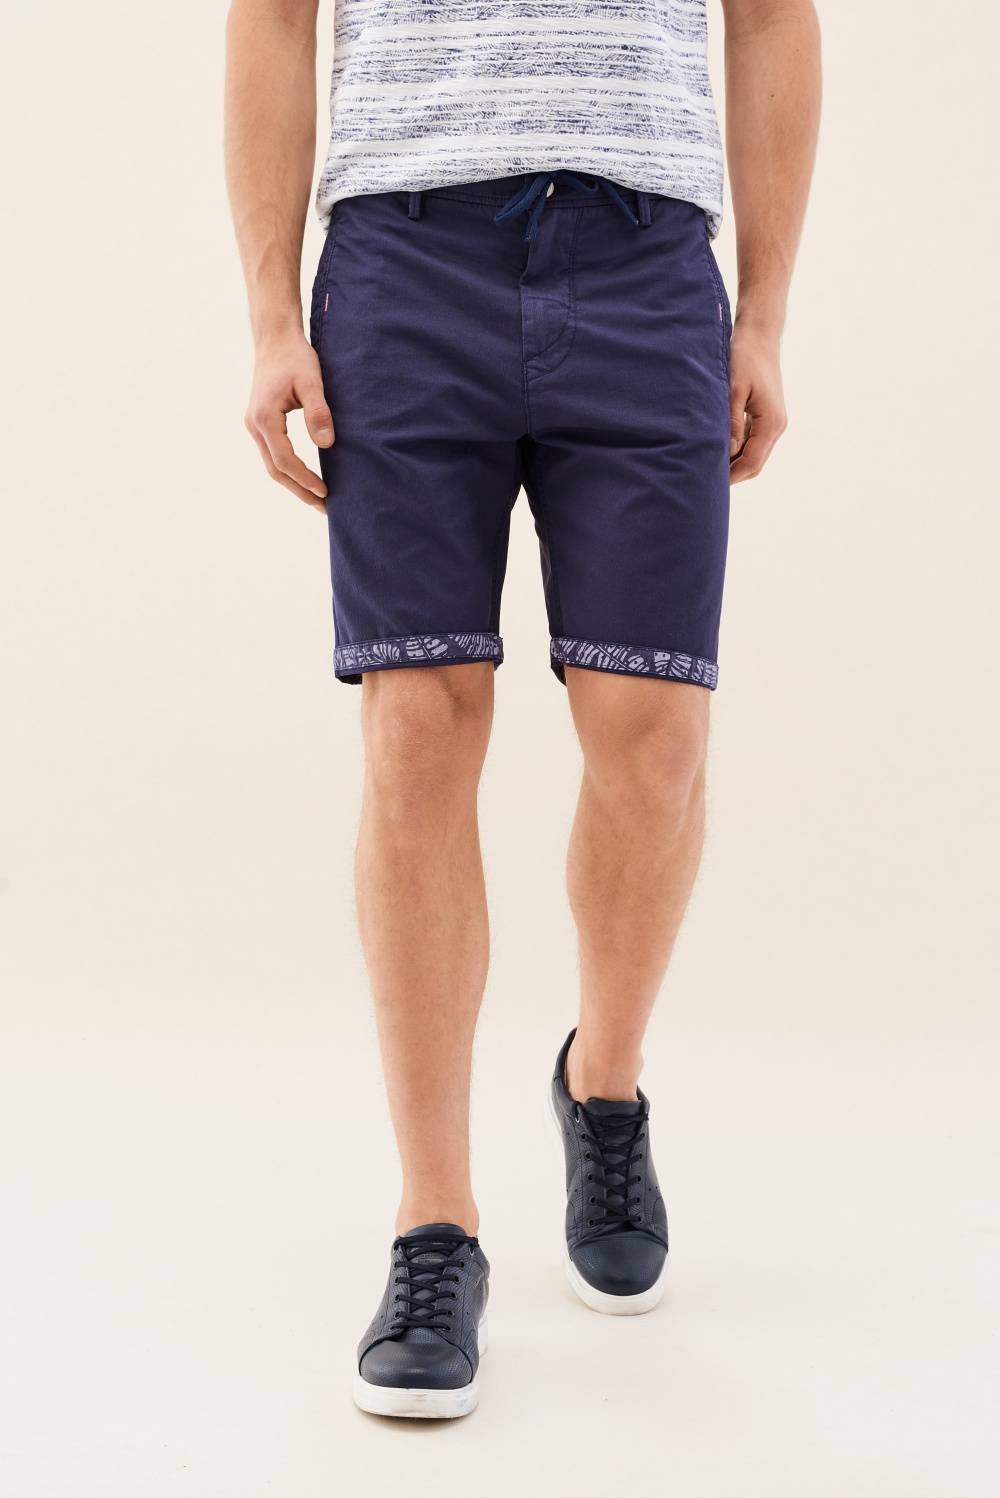 Shorts in fabric colour with detail - Salsa